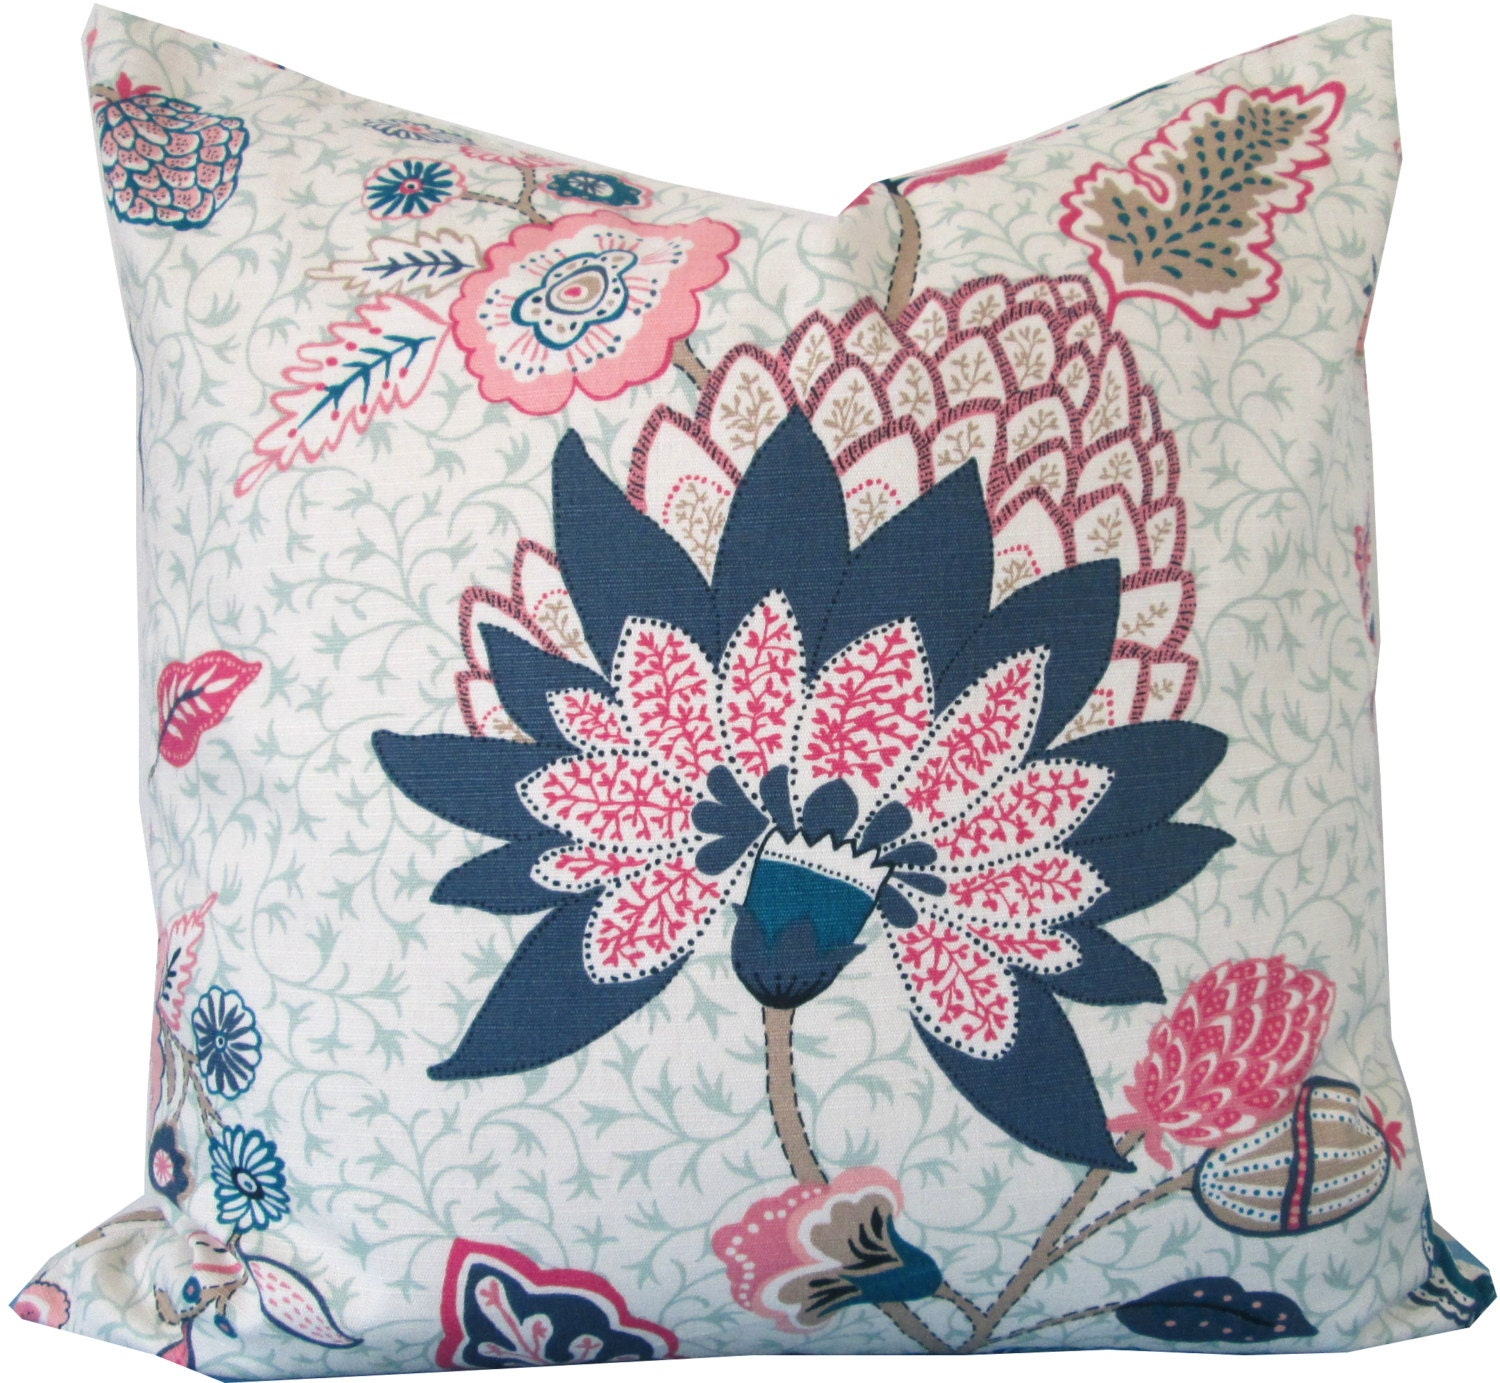 Designer Decorative Pillow Cover-Duralee-Navy Blue and Pink